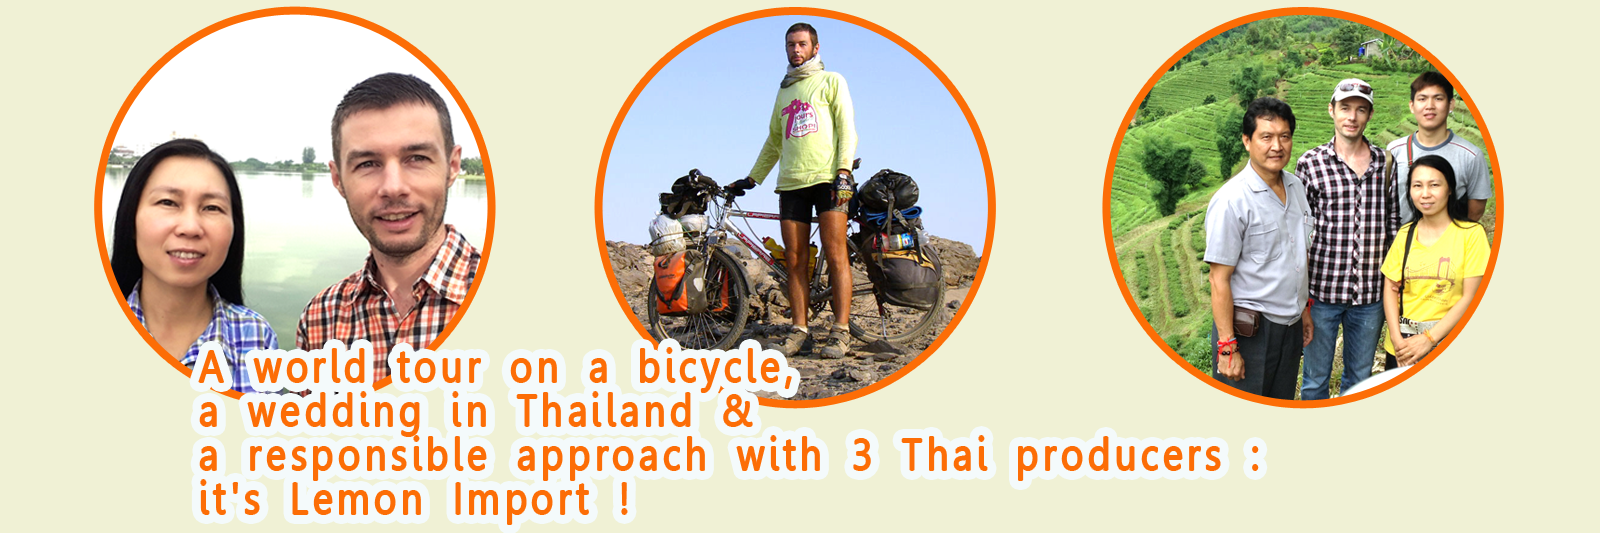 A world tour on a bicycle, a wedding in Thailand and a responsible approach with 3 Thai producers: it's Lemon Import, the project of Junthana & Clément Pluchery